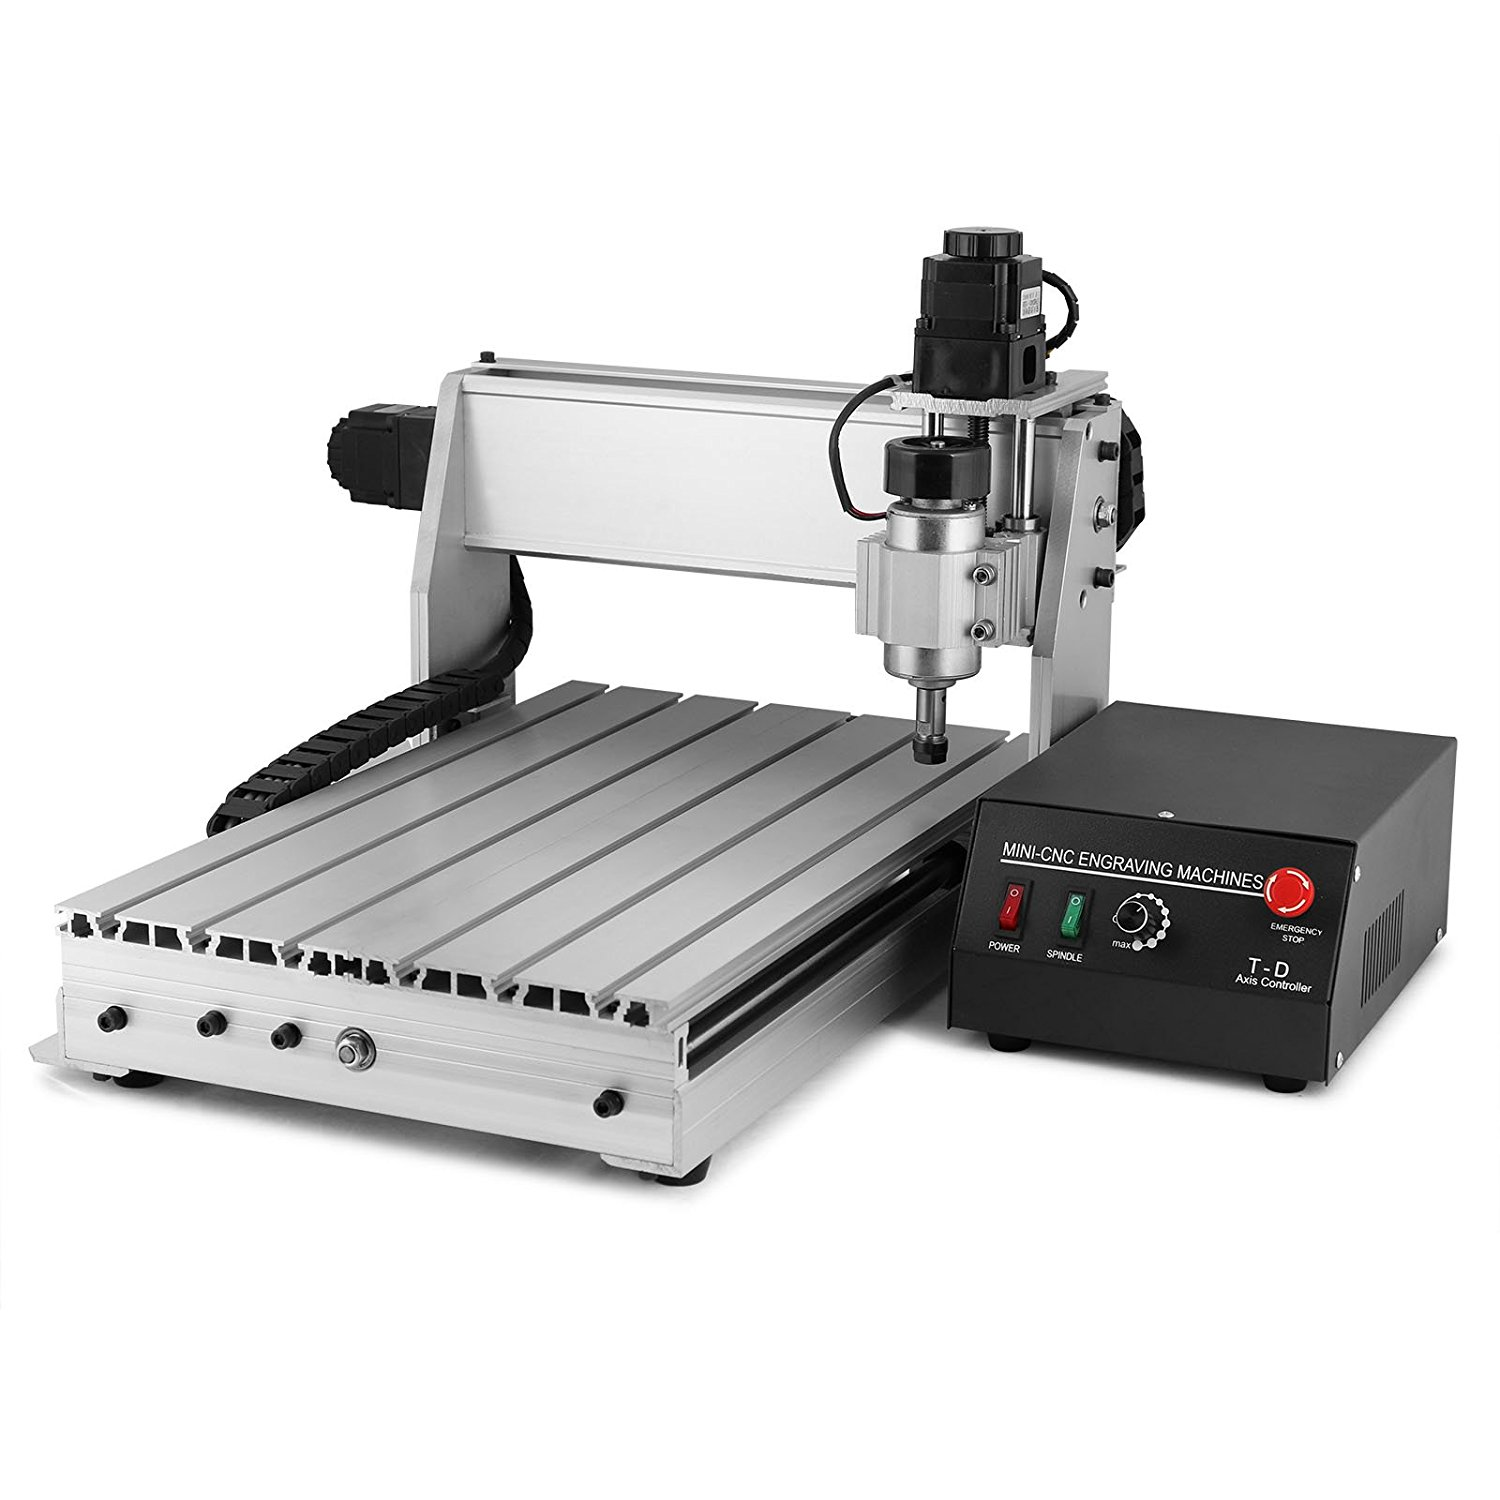 CNCShop CNC Router Engraving Machine CNC Engraver 3 Axis 3040T Wood Carving Tools Controlled By Desktop Computer (3040T 3 Axis)